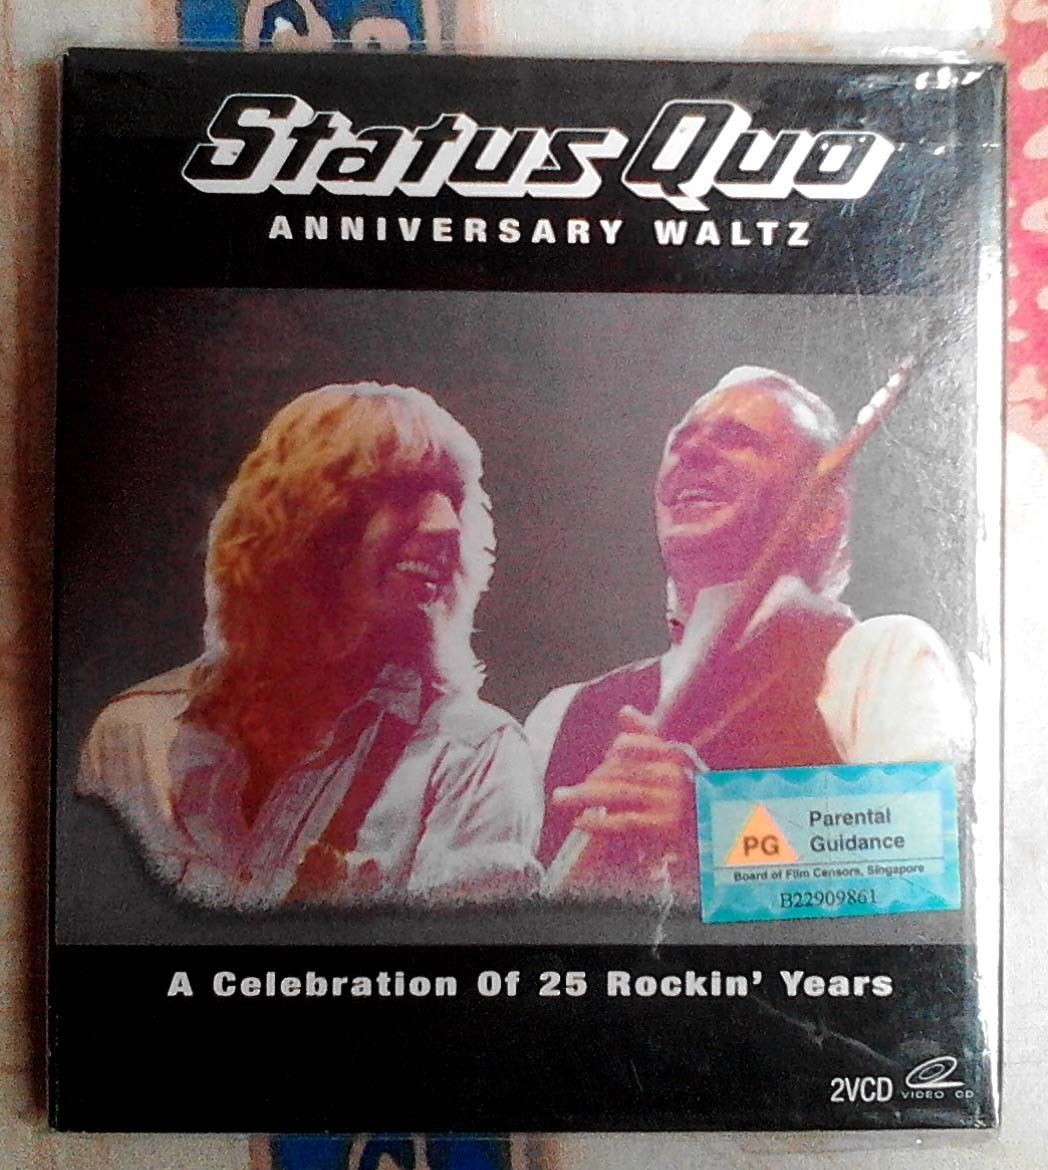 Status Quo Anniversary Waltz A Celebration Of 25 Rockin Years Video Humble Pie The Life And Times Steve Marriott Dvd Anniversaries